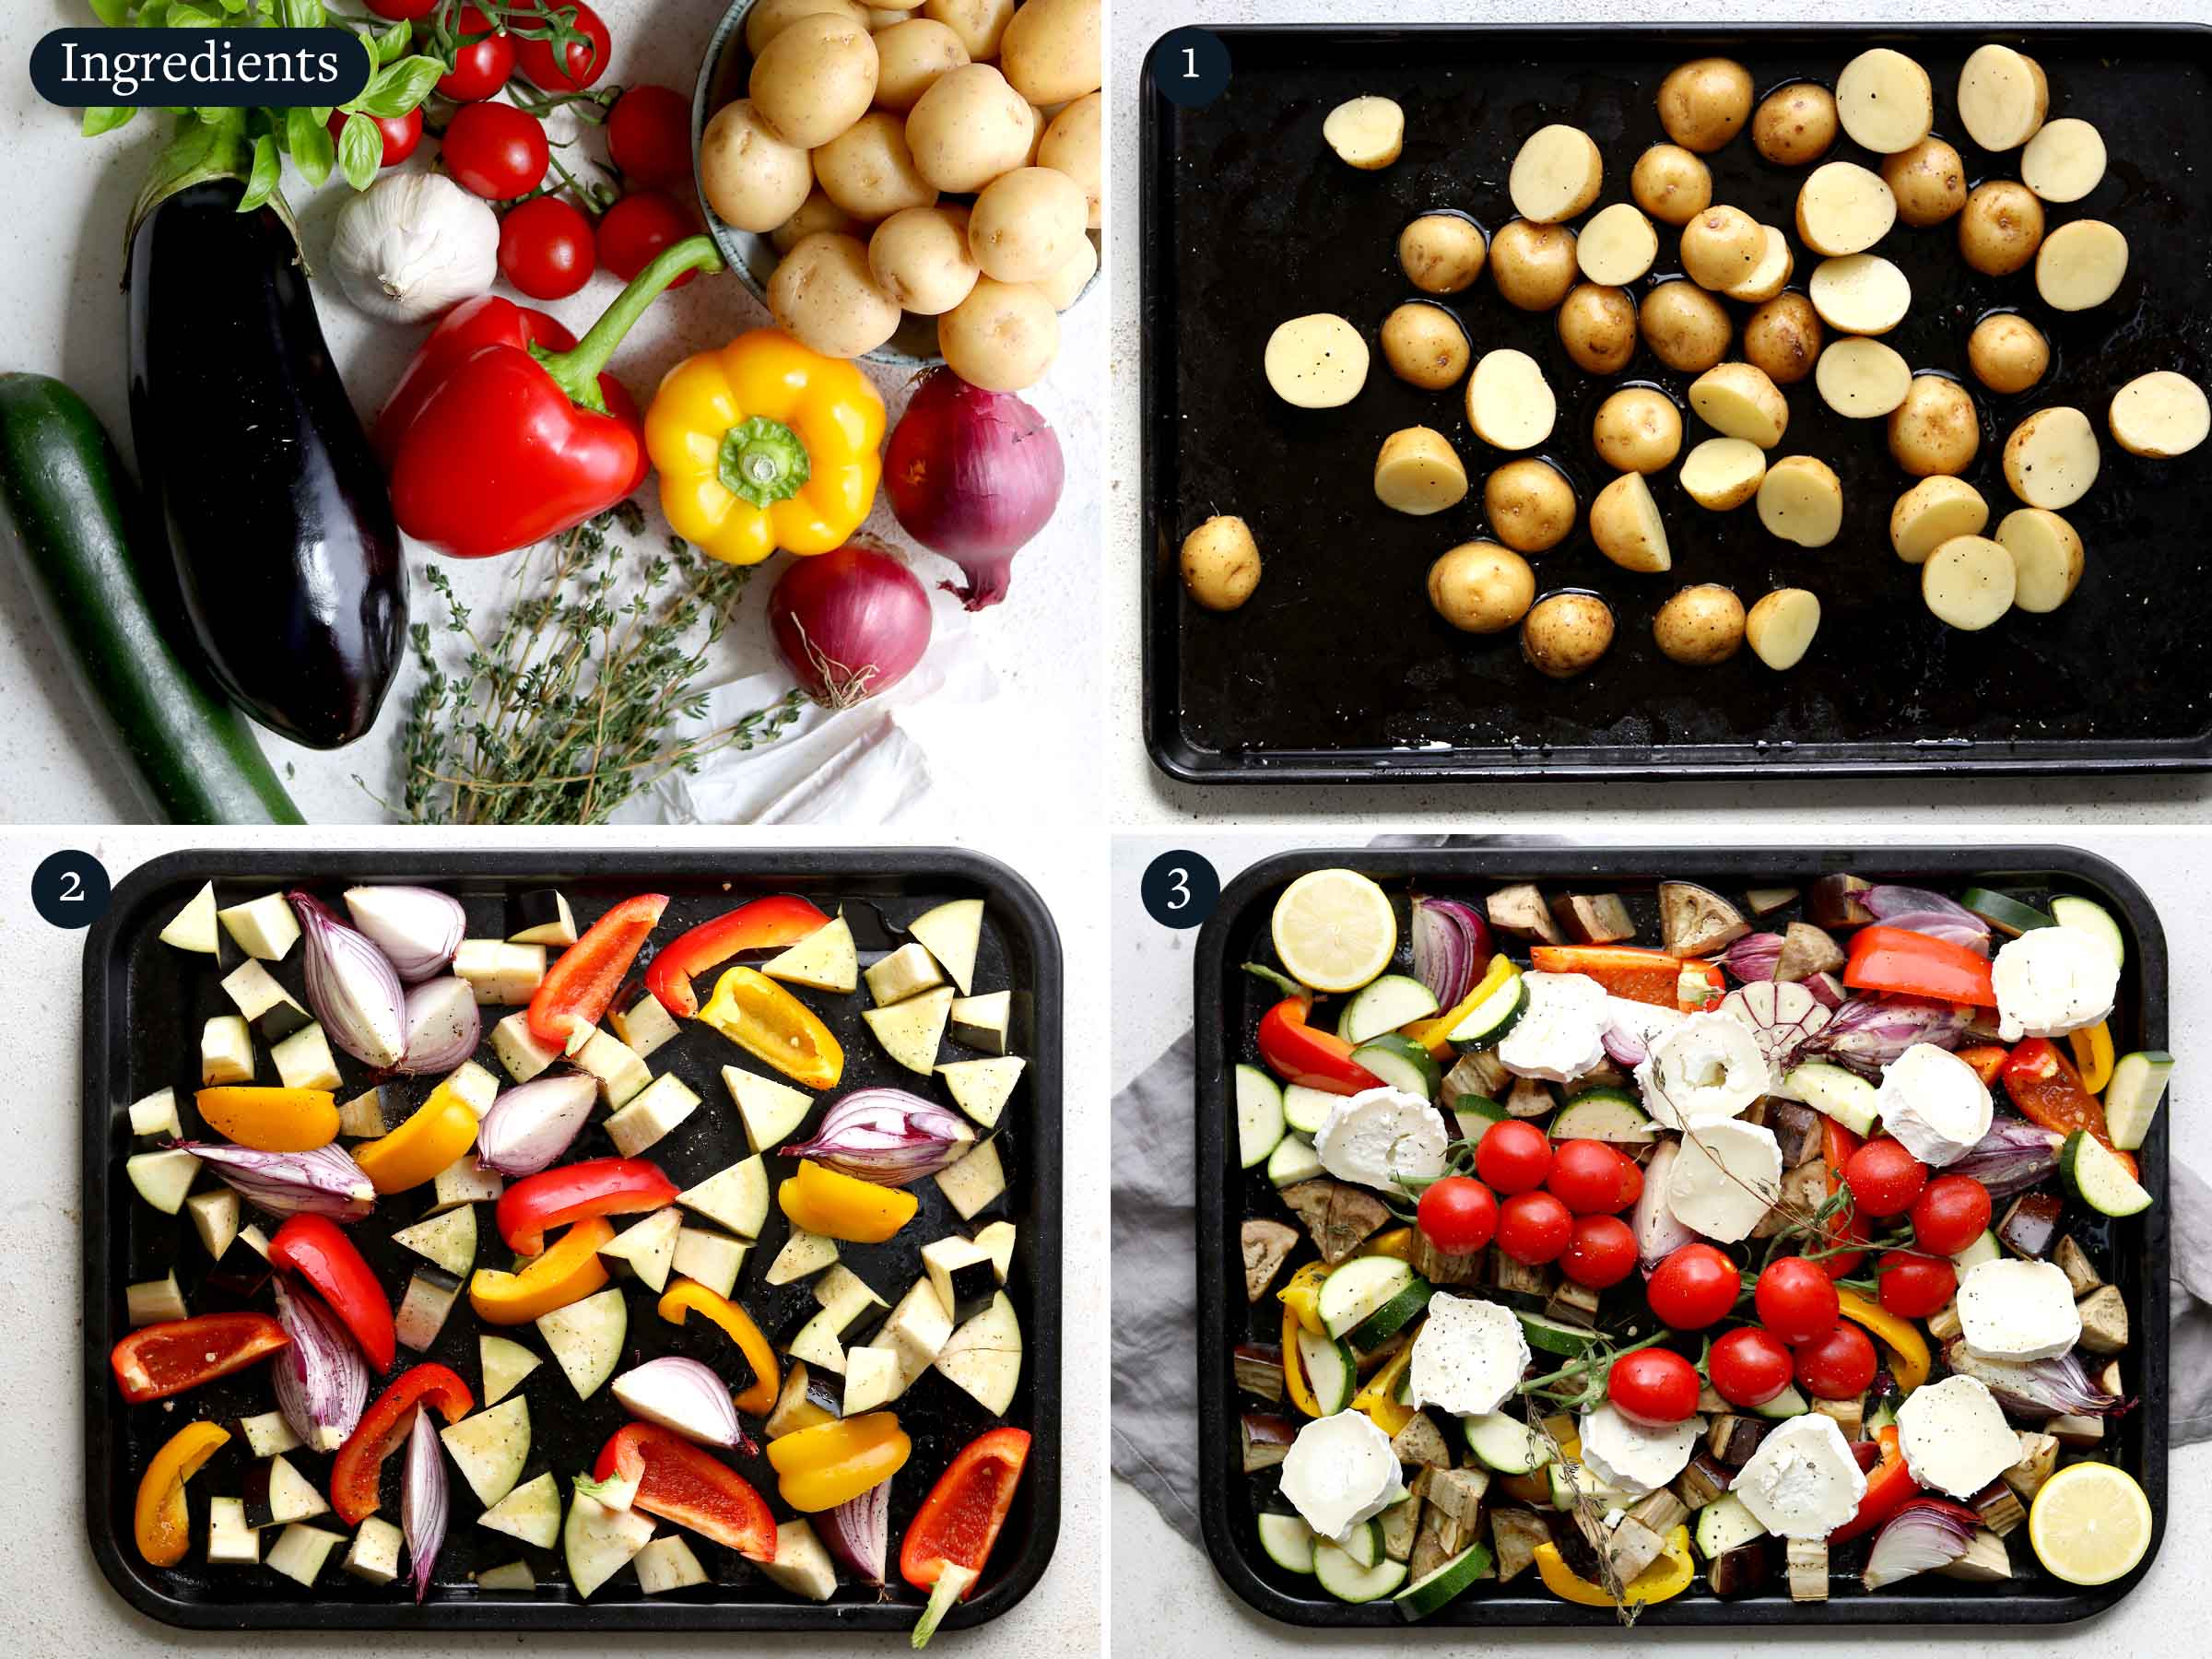 Step by step guide to making roasted mediterranean vegetables, showing ingredients and baking vegetables